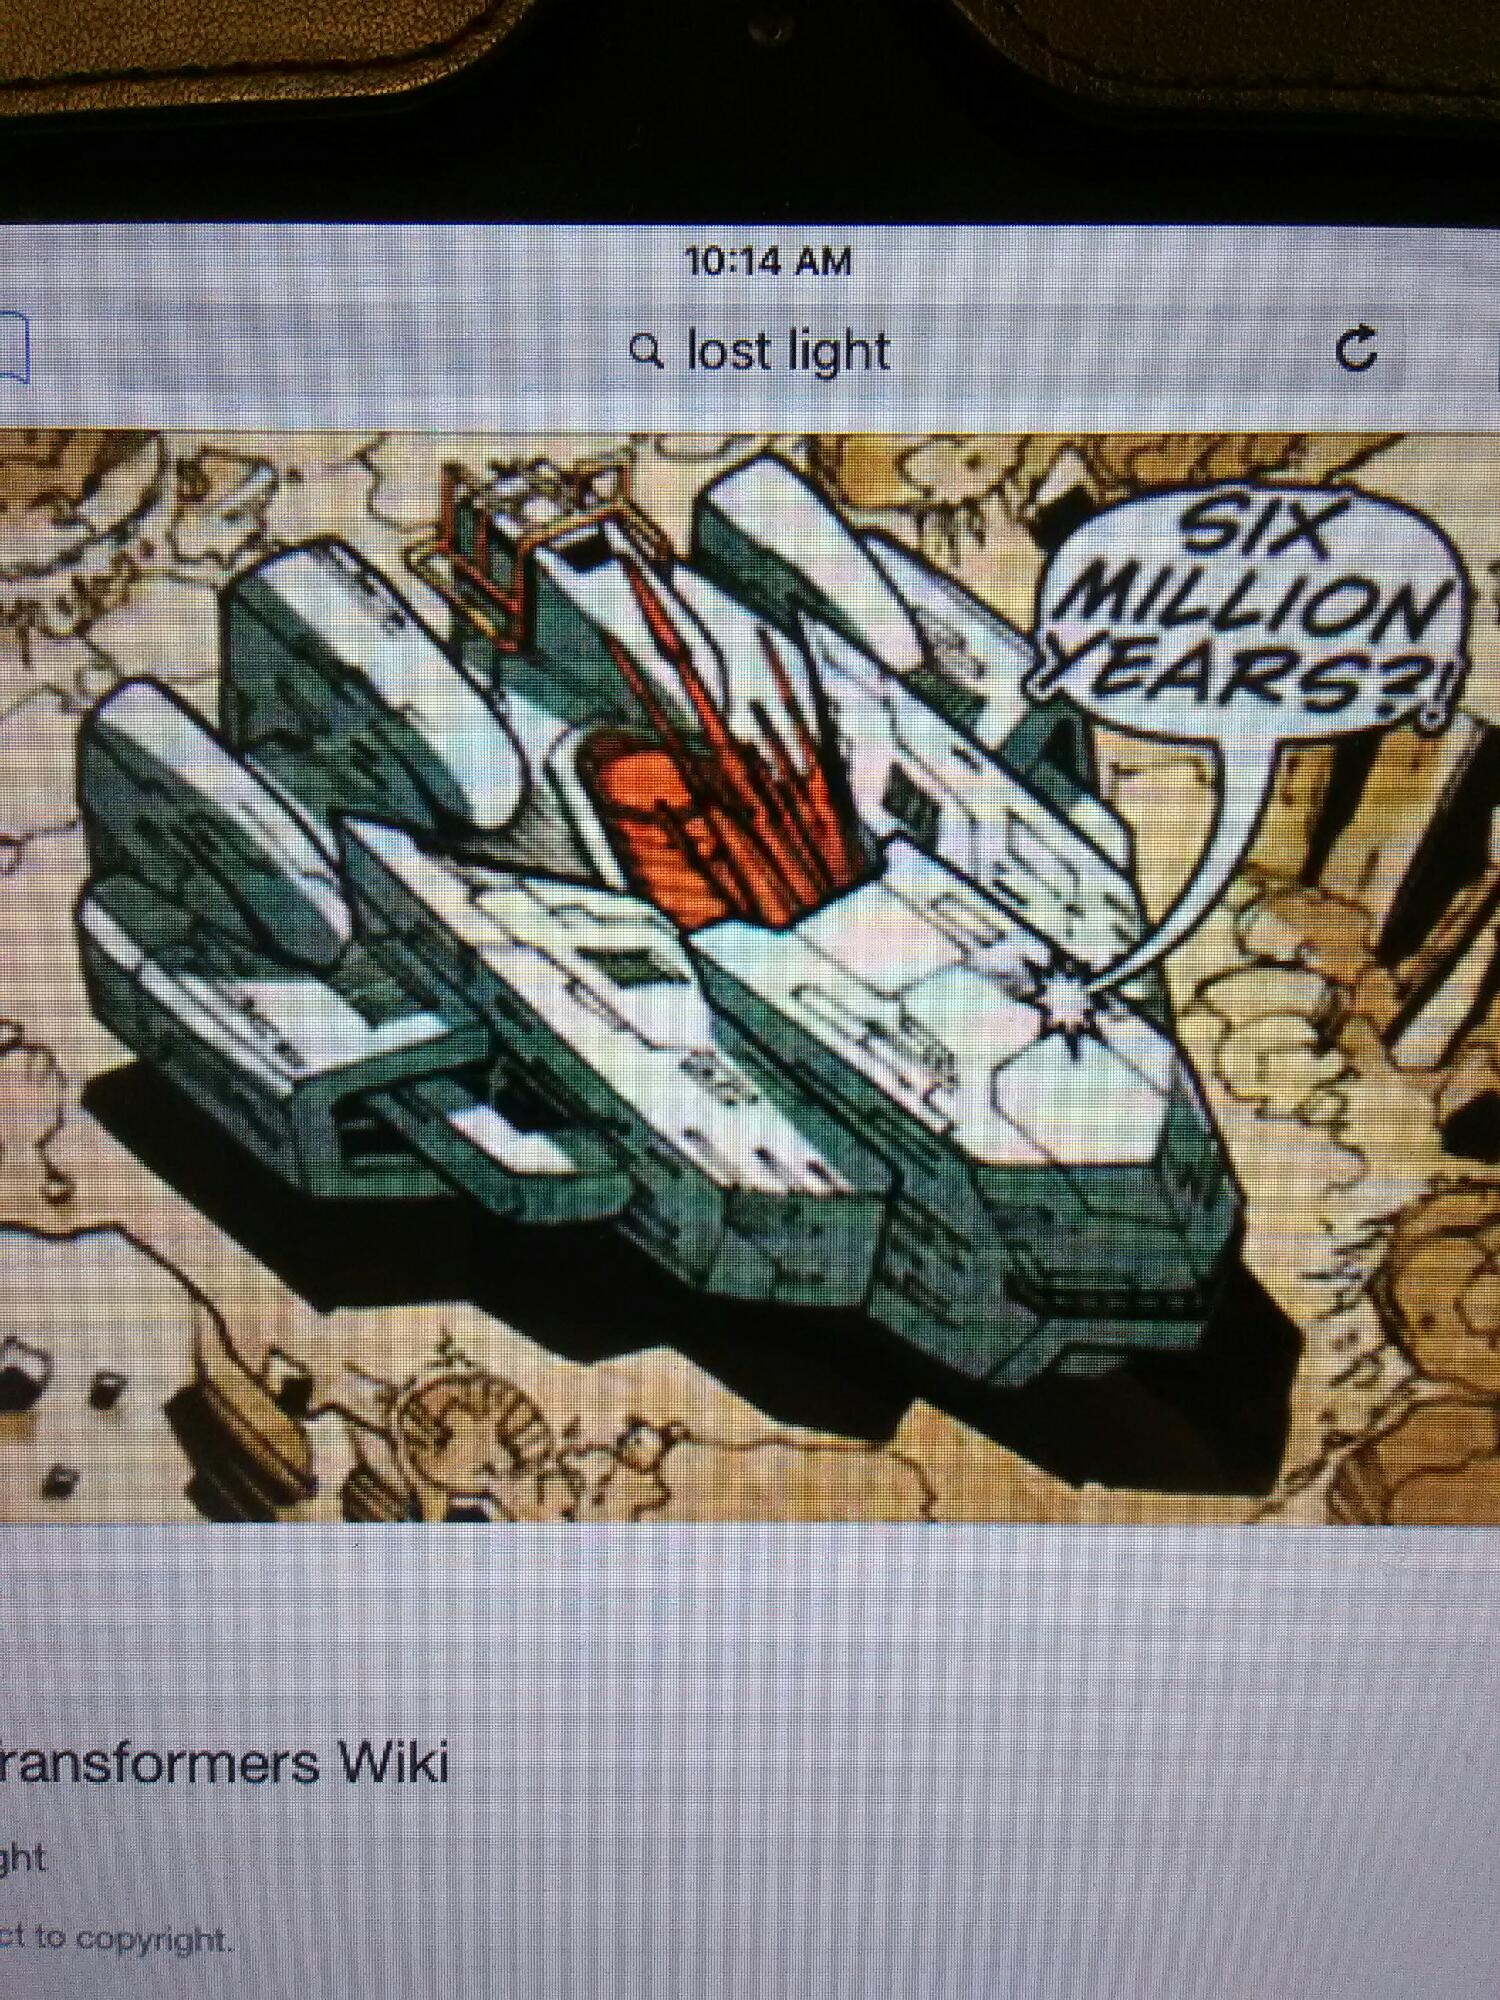 Dose any else want a lost light ship toy